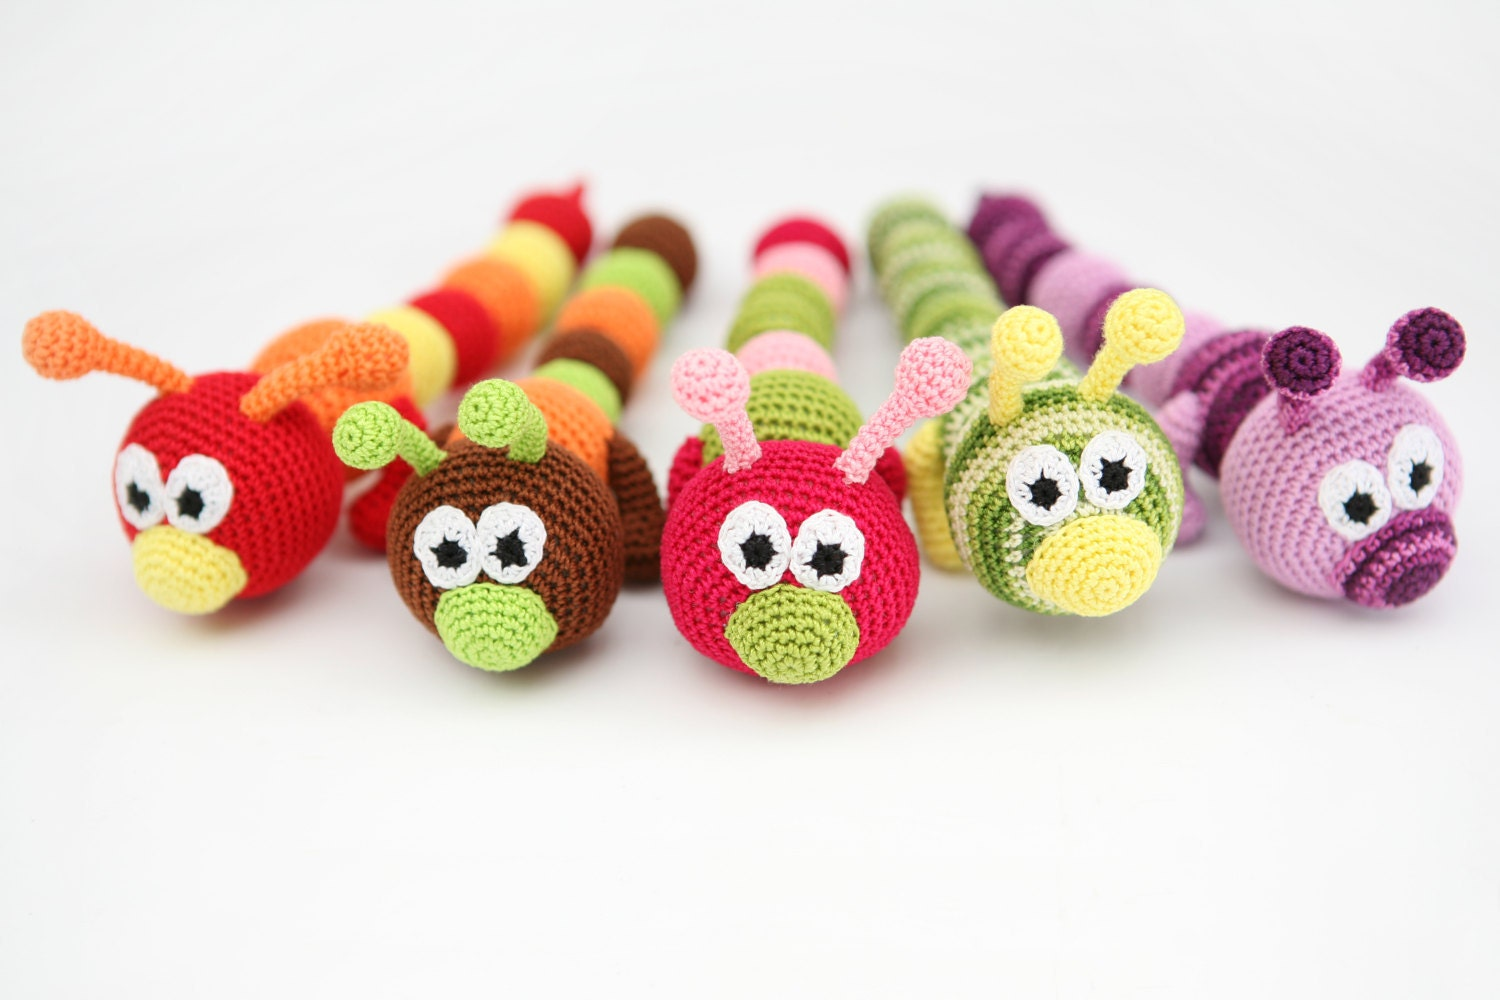 Baby Teething Toys : Sale crochet baby toy teething grasping toys